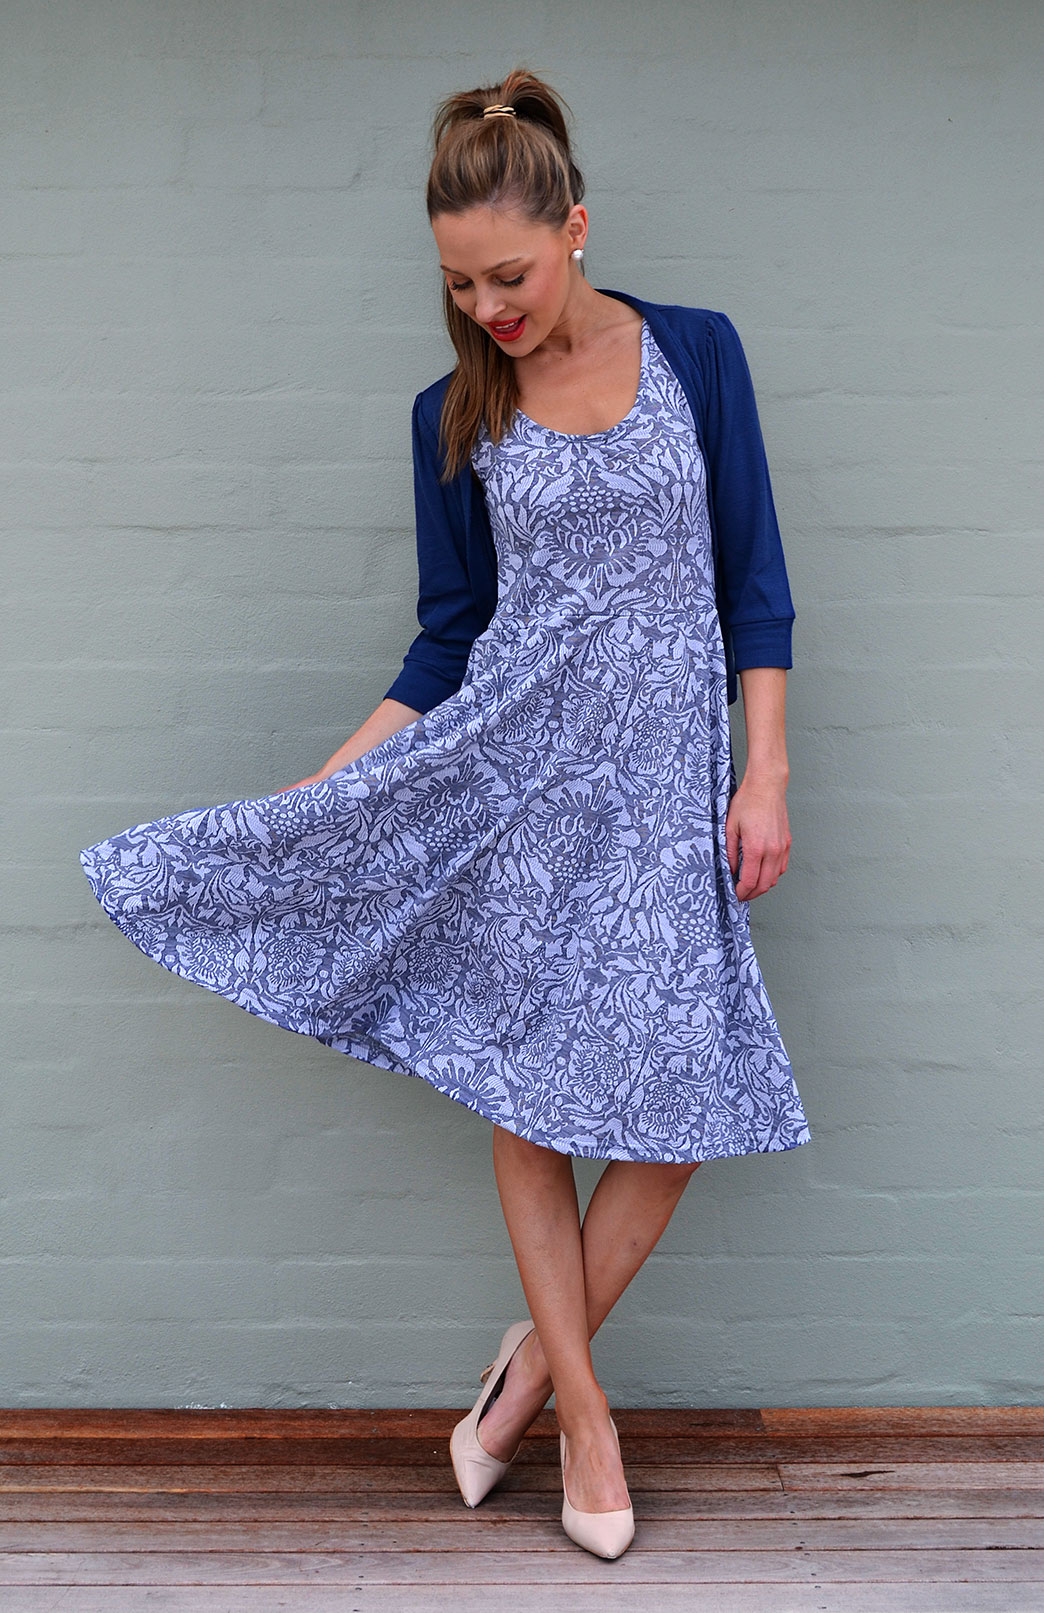 Sleeveless Jackie Dress - Women's Floral Print Merino Wool Sleeveless Dress - Smitten Merino Tasmania Australia